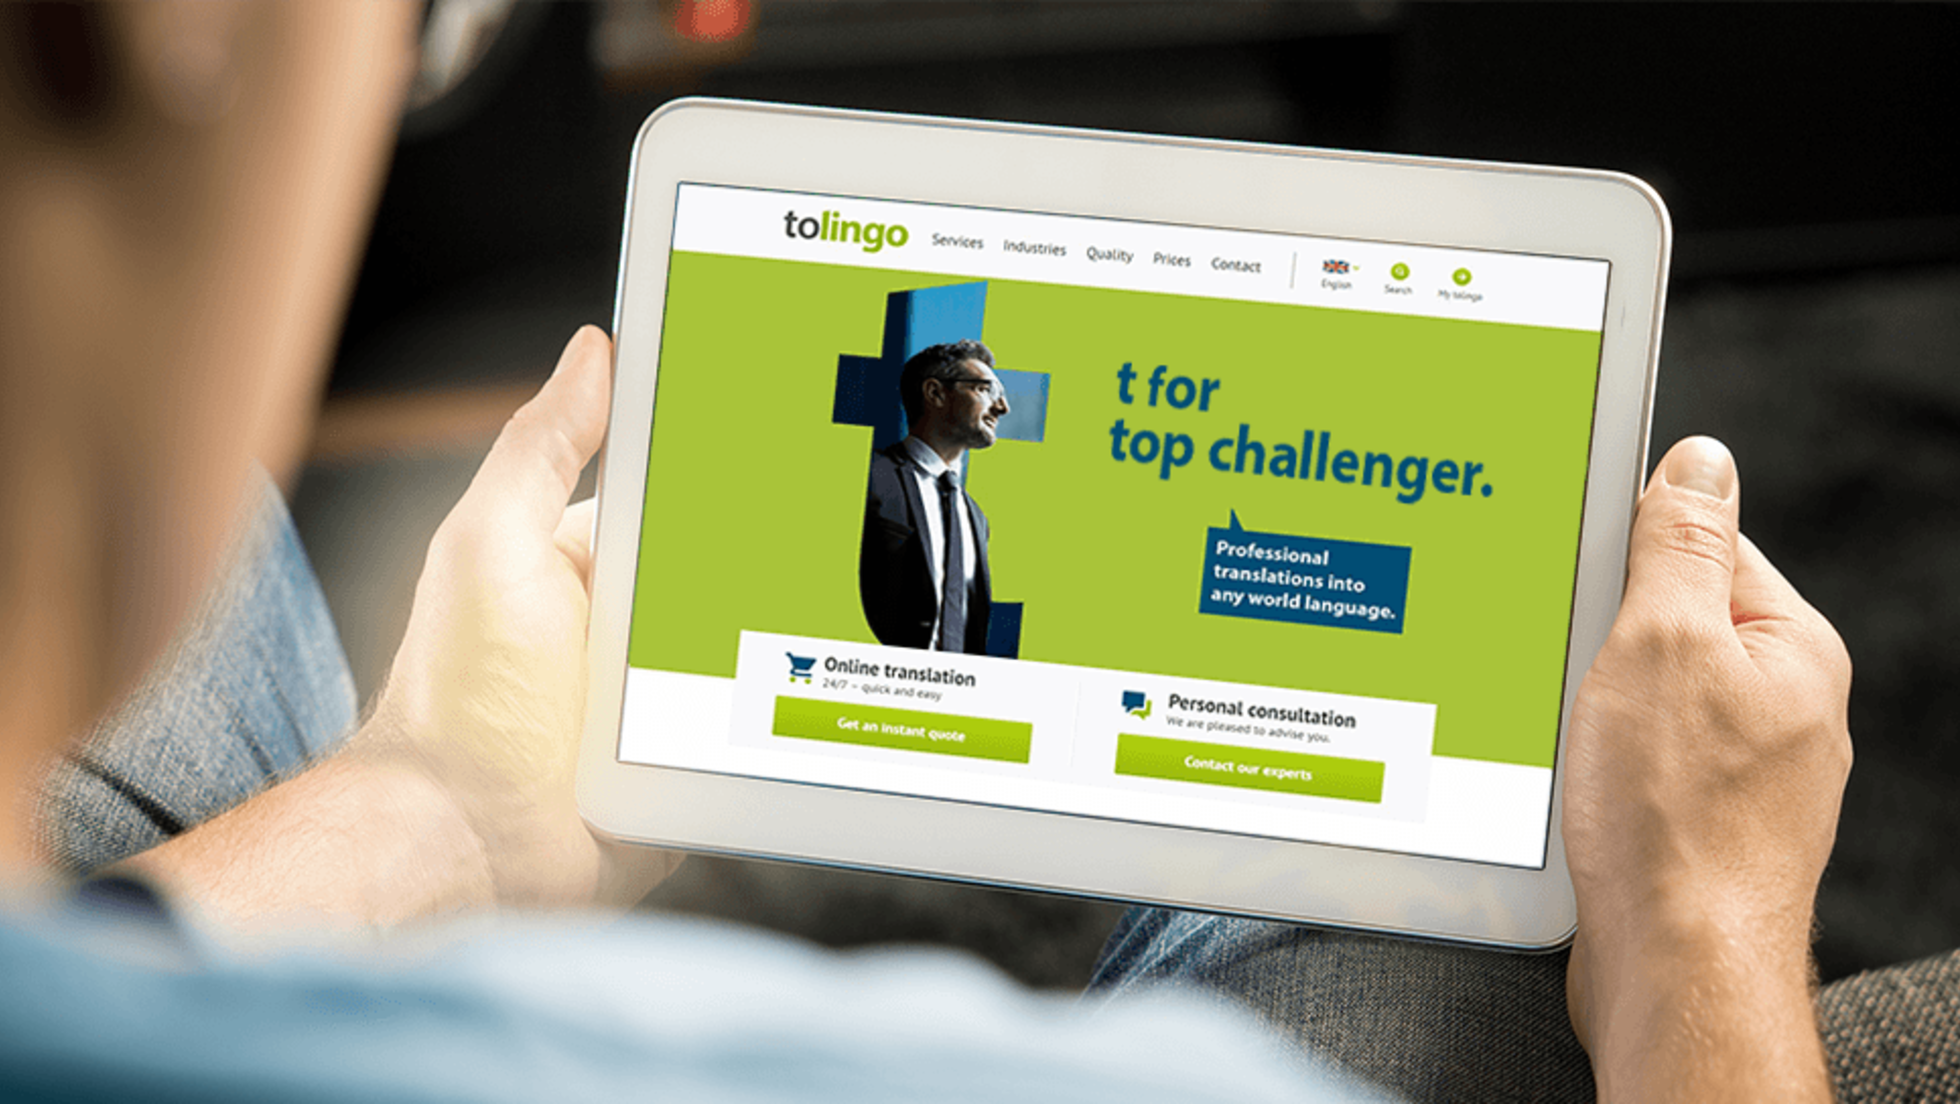 Slator study confirms: tolingo is a top challenger